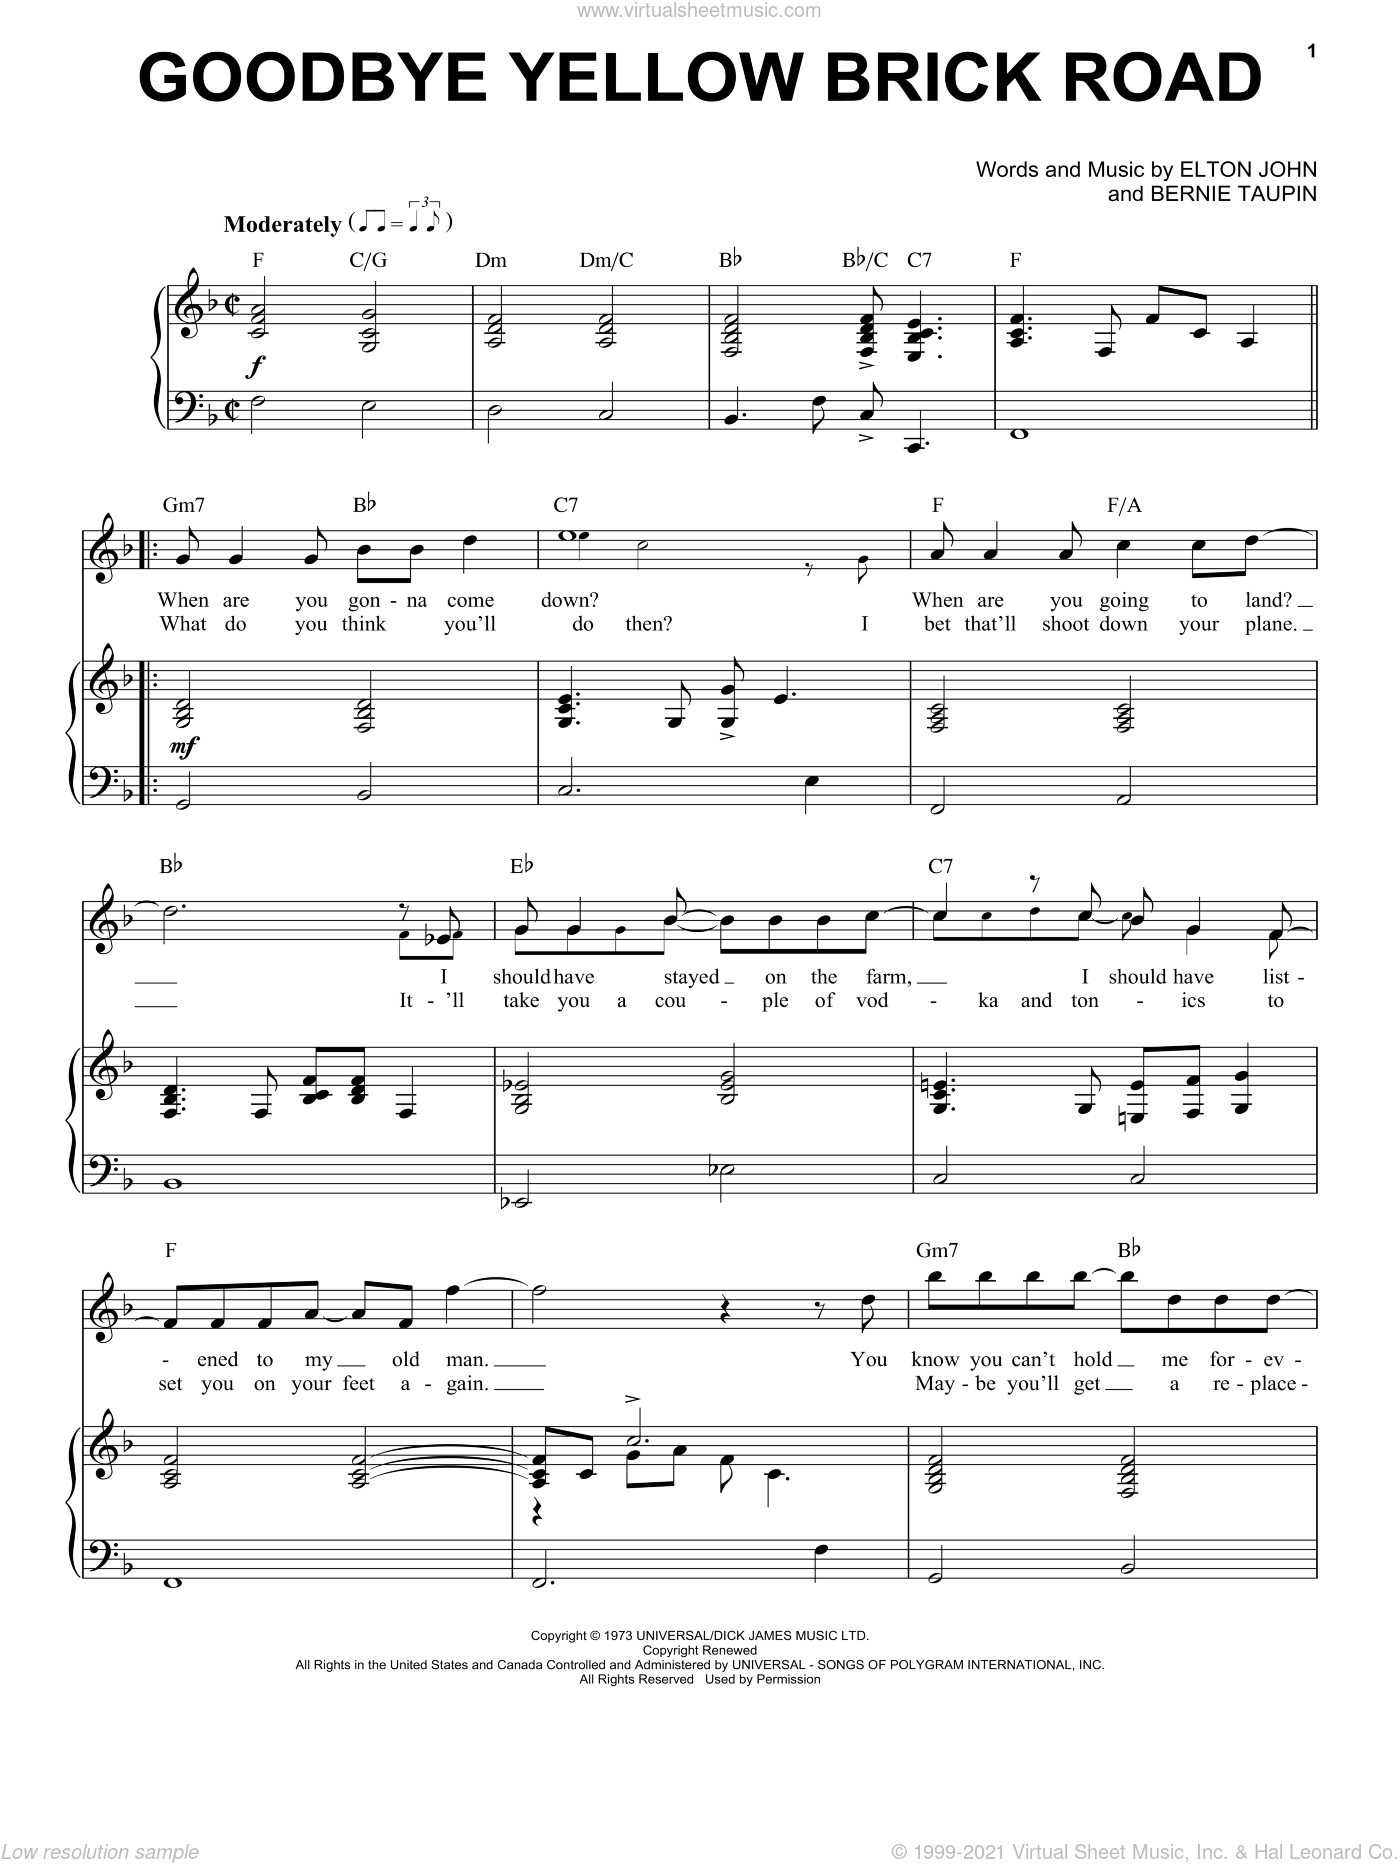 Goodbye Yellow Brick Road sheet music for voice and piano by Elton John and Bernie Taupin, intermediate skill level